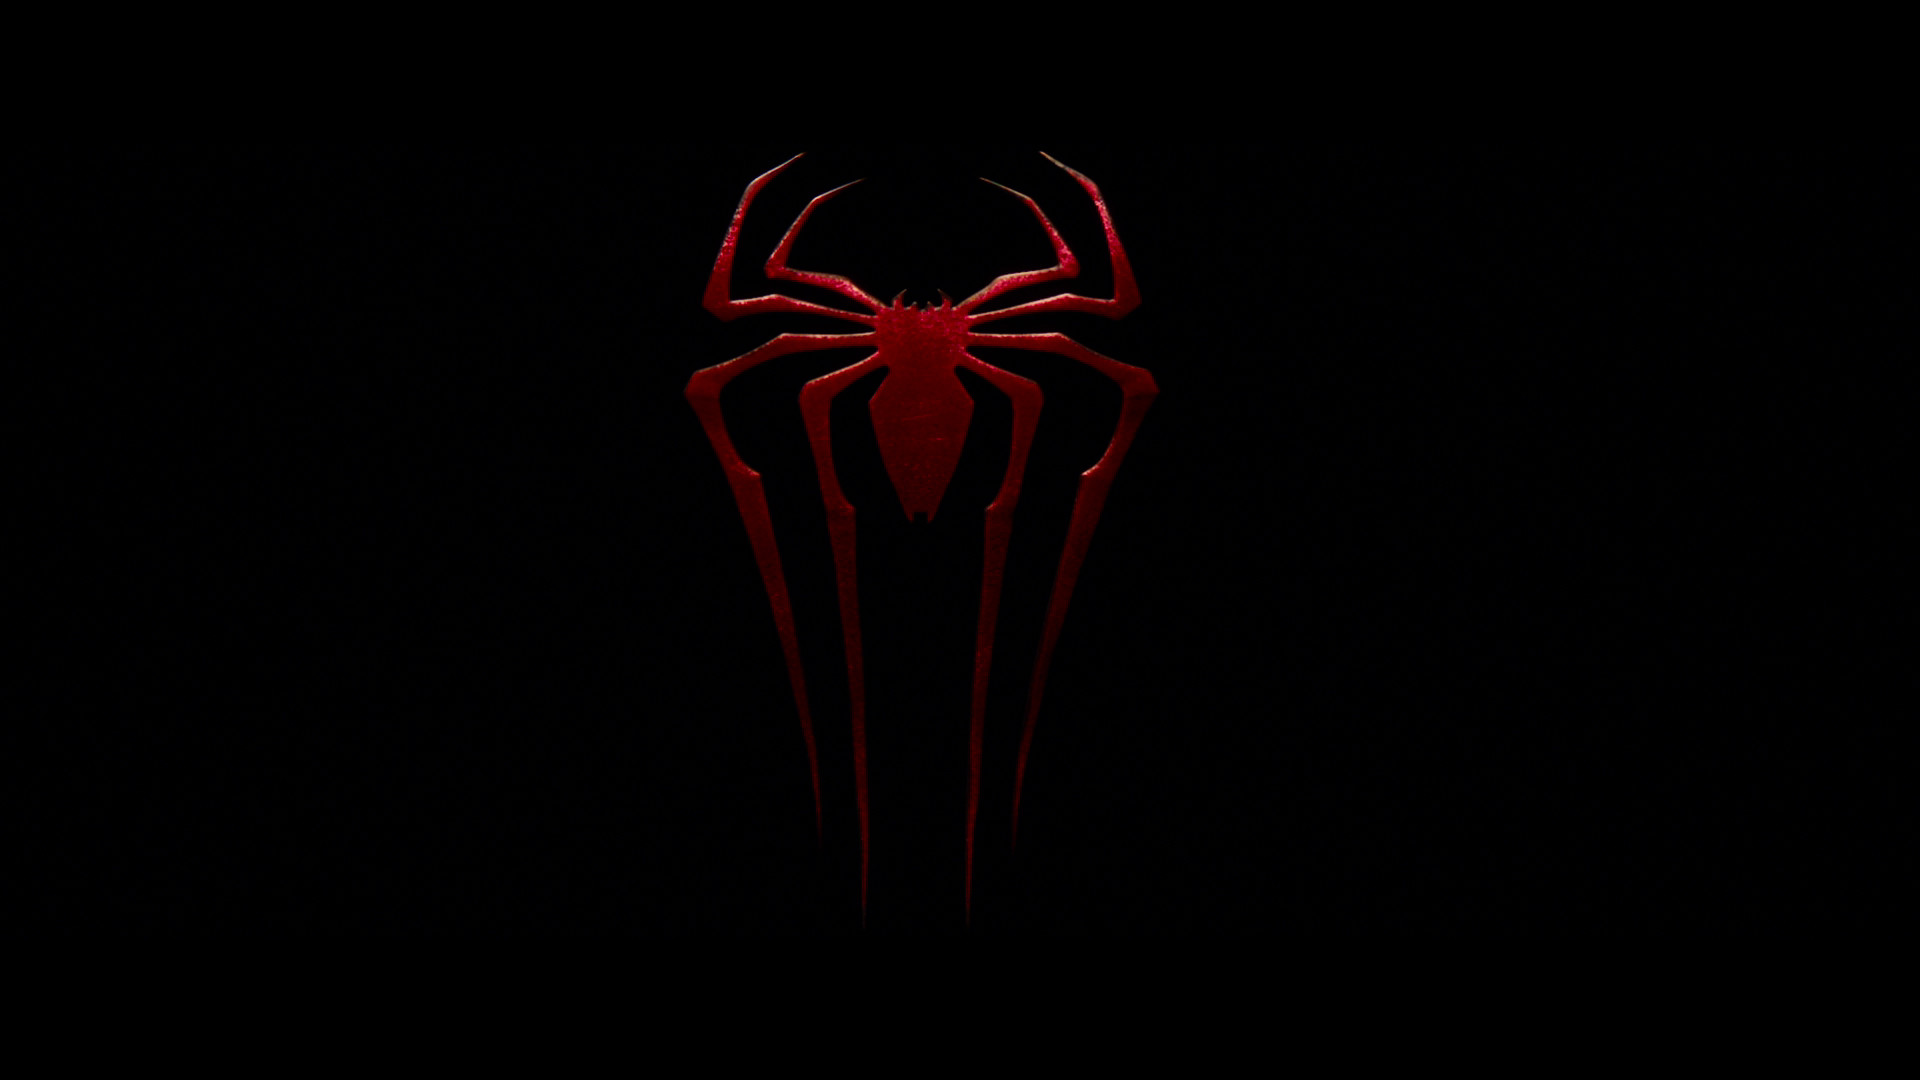 Black spiderman wallpaper widescreen hd